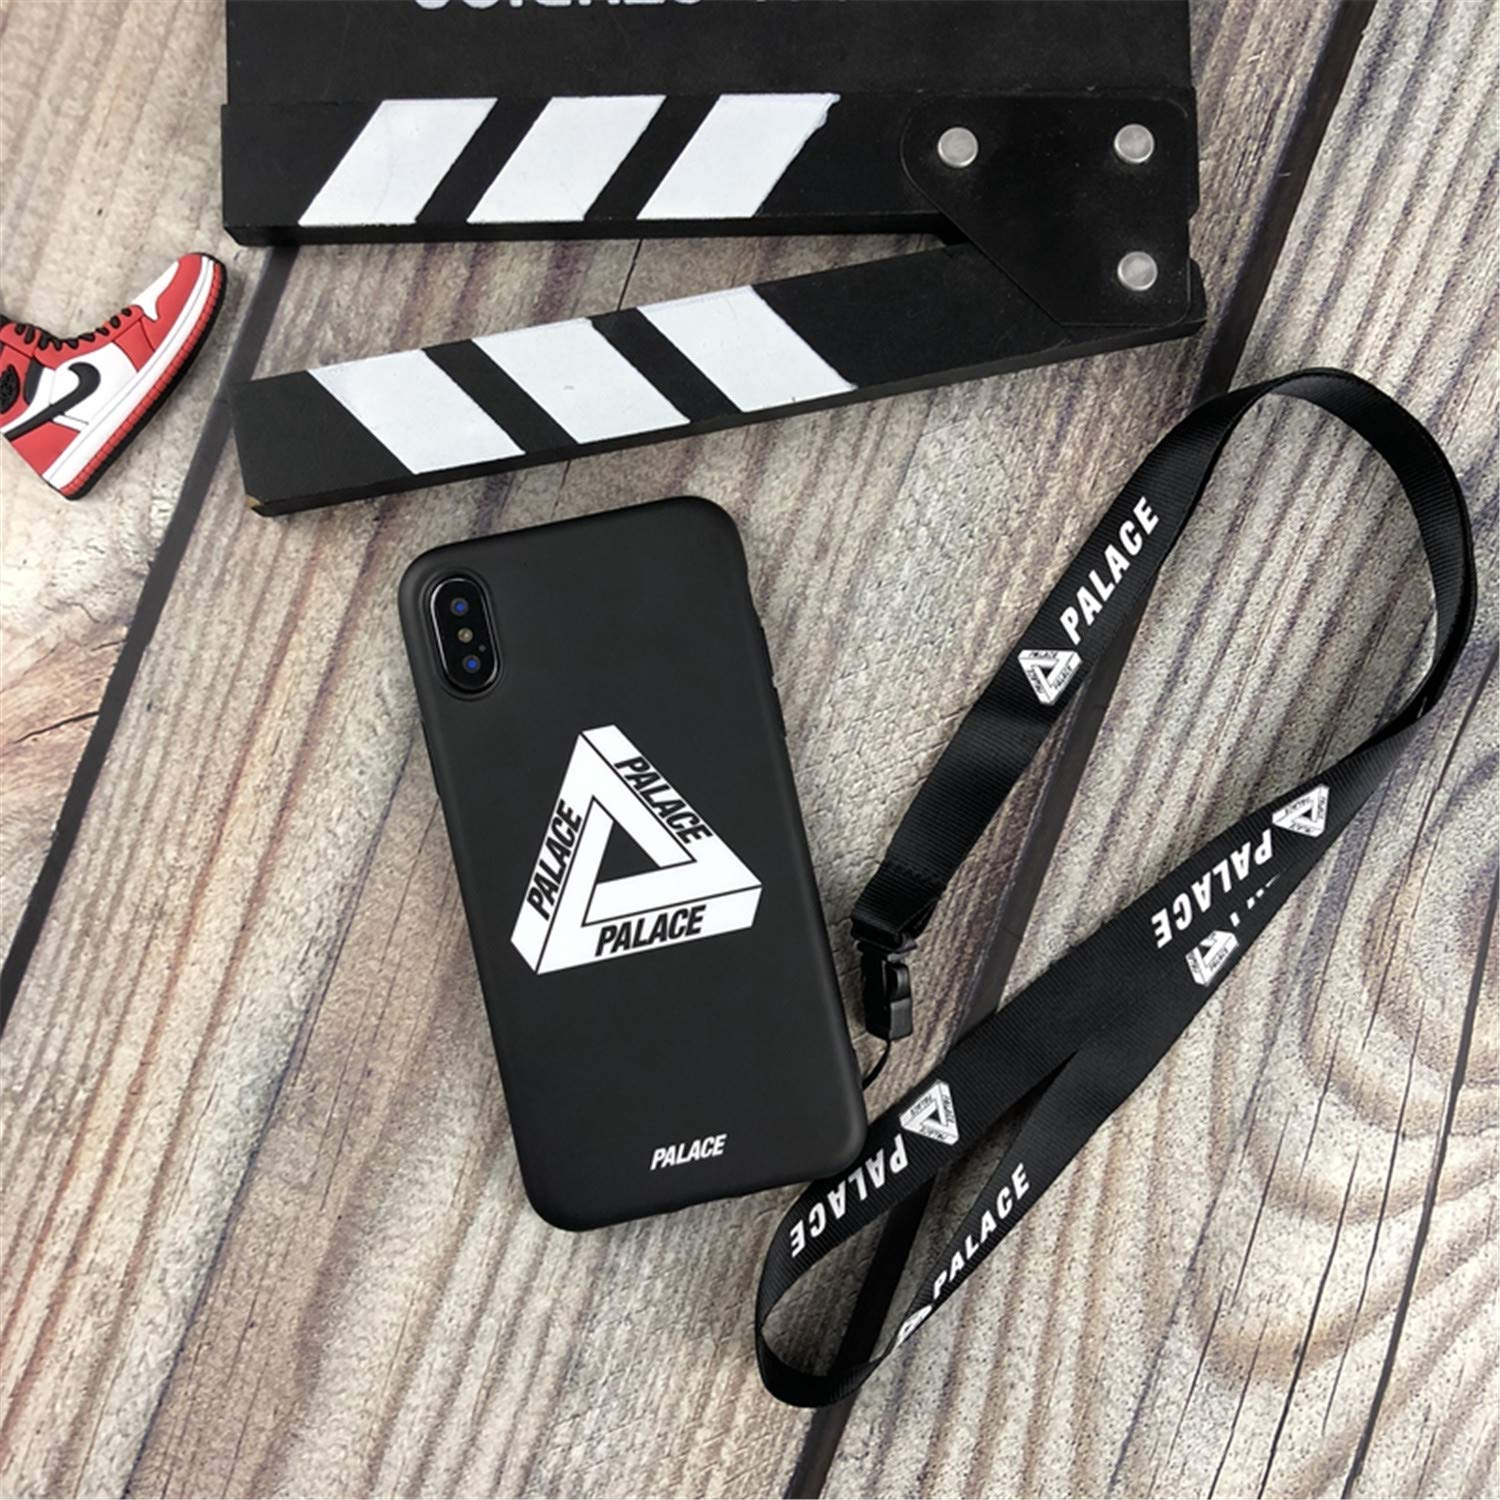 Amazon.com: Tide Palace Strap Off Soft Silicon Phone Case for iPhone Lanyard Capa Black for iPhone 7 8 Case & Strap: Cell Phones & Accessories